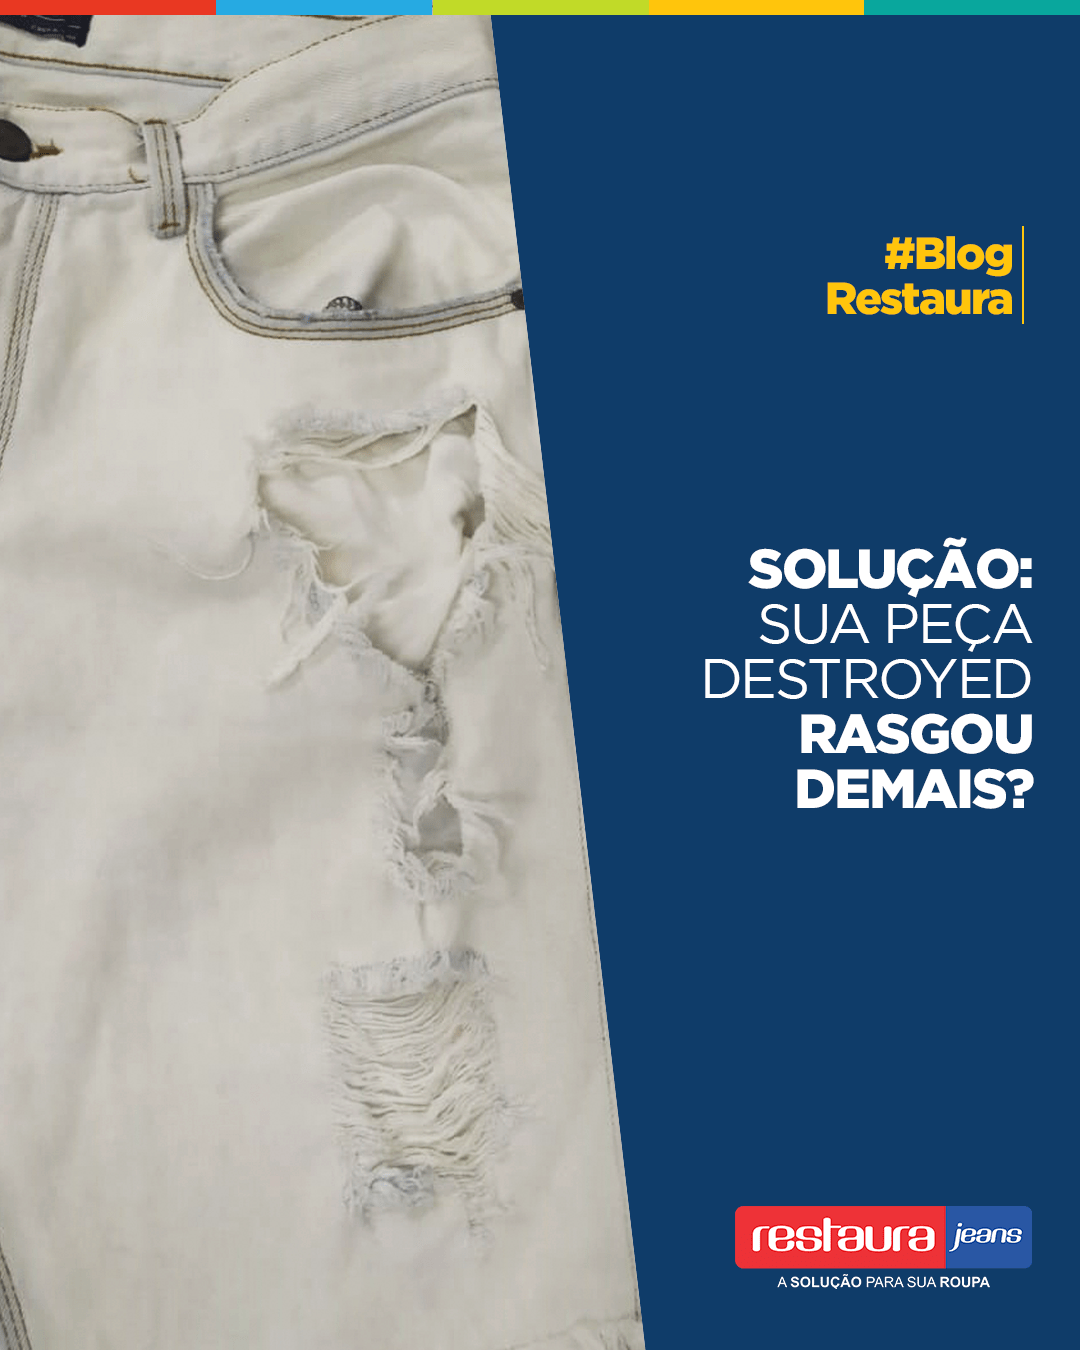 Solução: Sua peça destroyed rasgou demais?